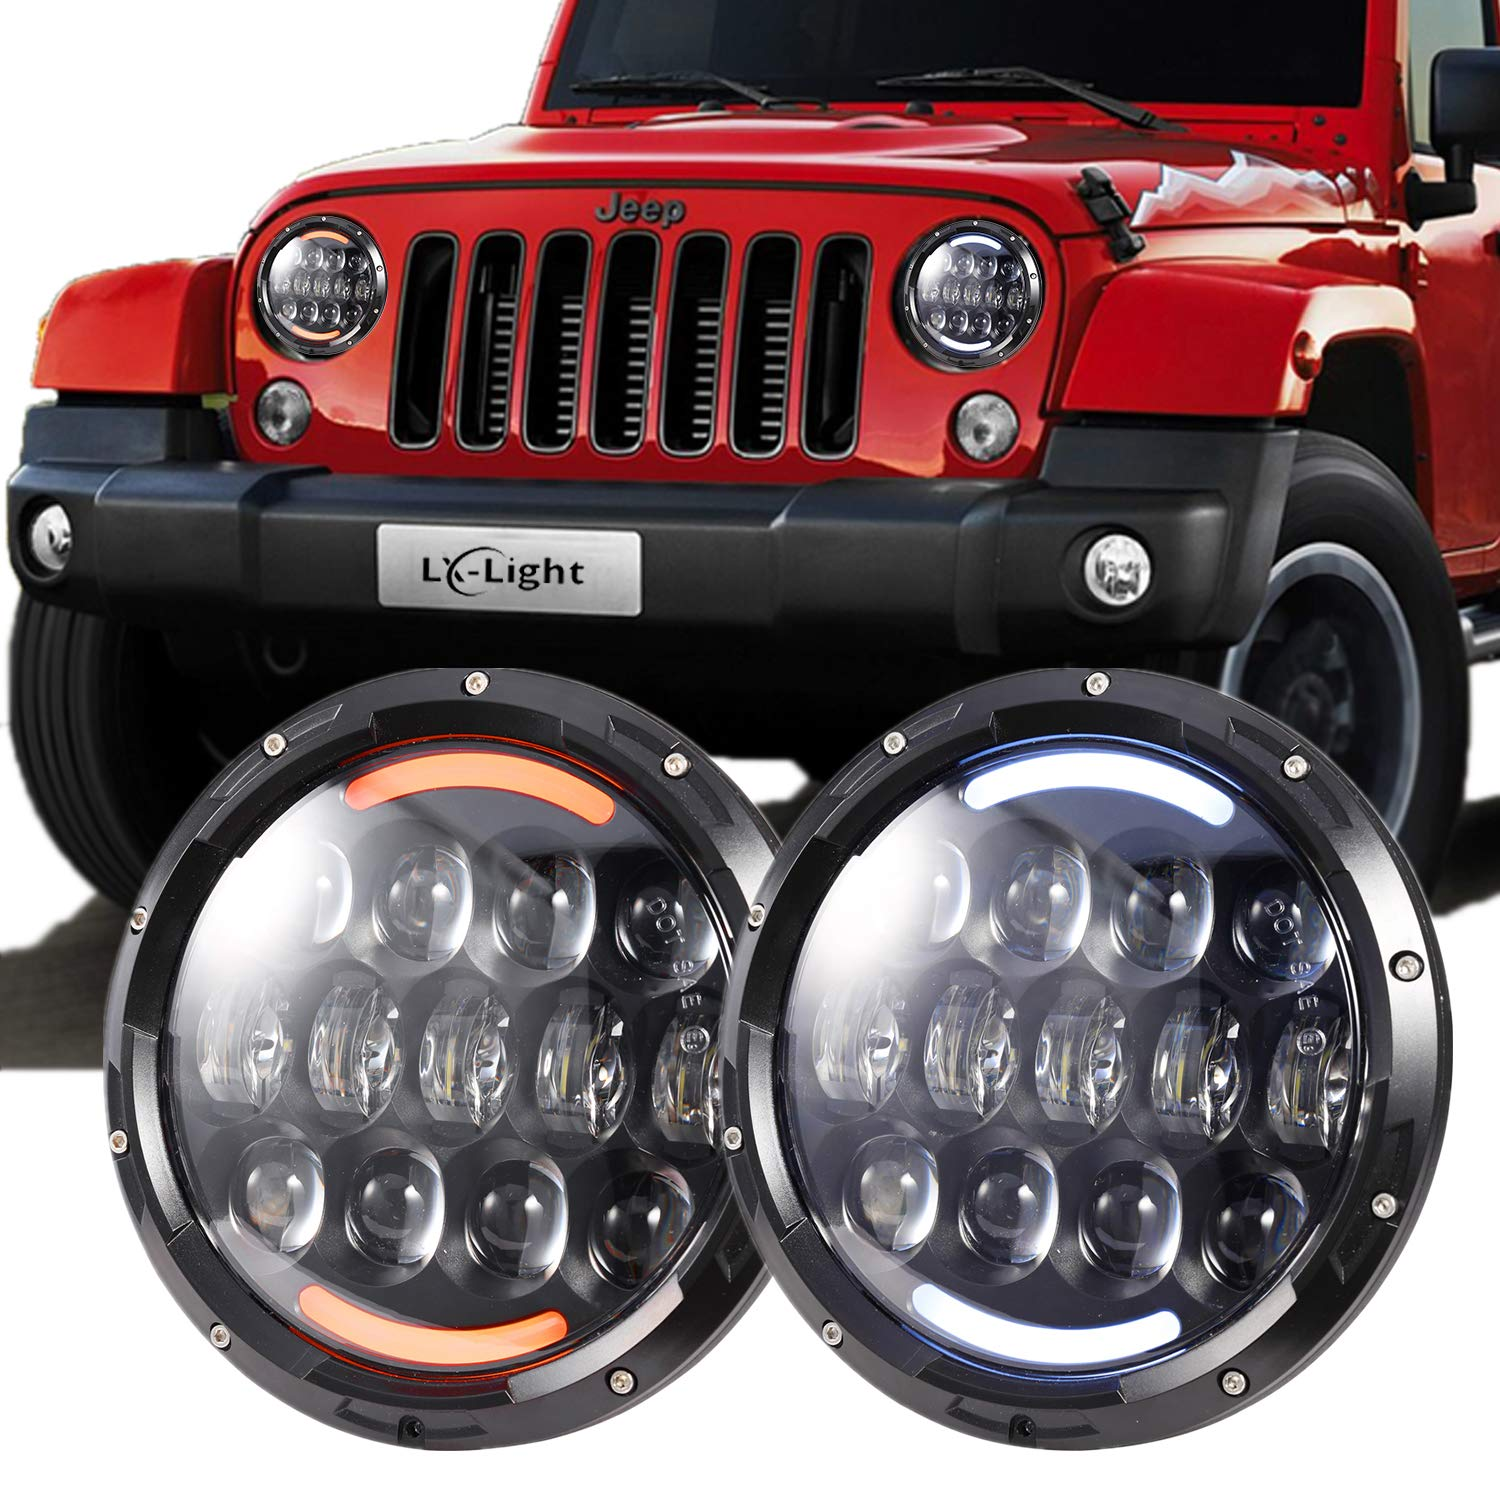 Lx Light Extreme Bright 105w Osram Chips Headlights With Back Up Lights Wiring Diagram 2003 Jeep Wrangler White Drl Amber Turn Signal For Jk Lj Tj Cj Hummer H1 H2 Land Rover